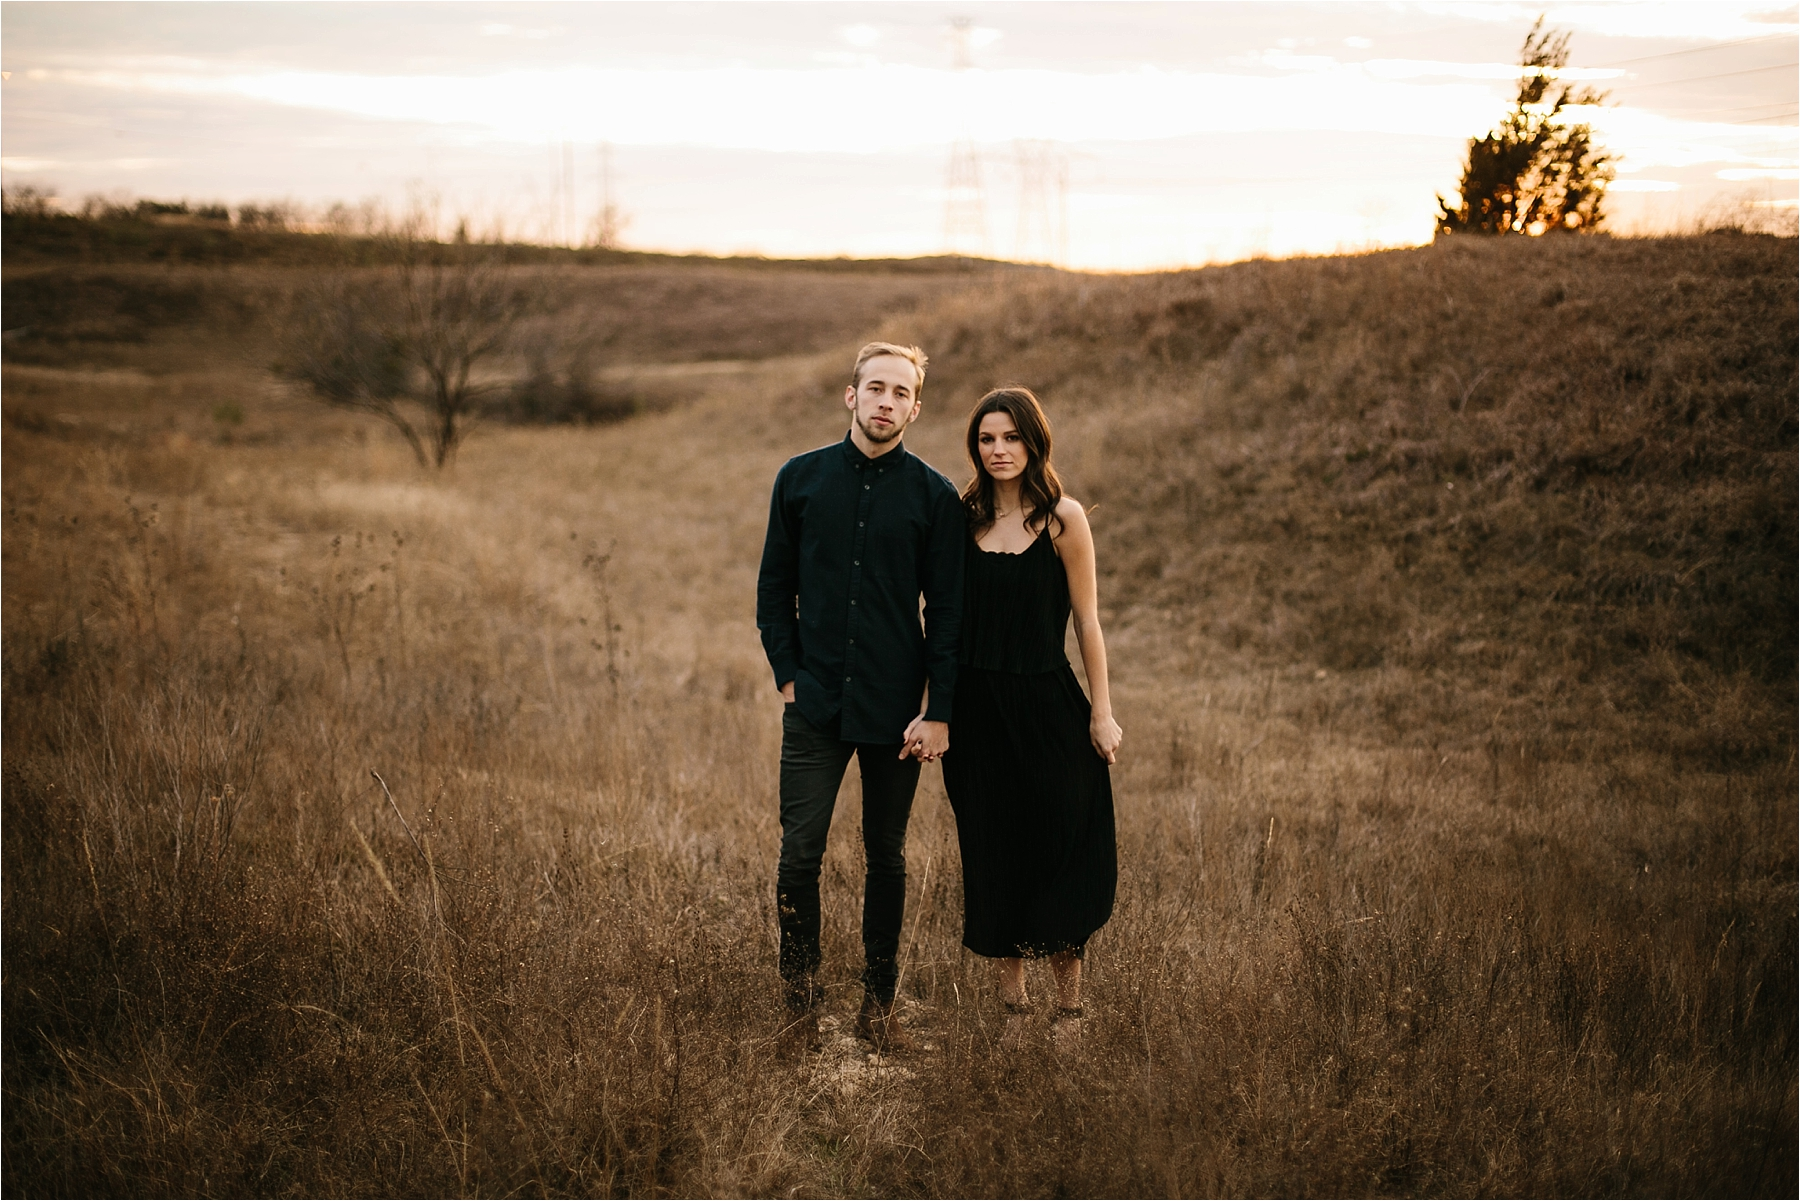 Trey + Phoebe __ a playful, intimate engagement session with dark_neutral outfit inspiration by North Texas Wedding Photographer Rachel Meagan Photography __ 37